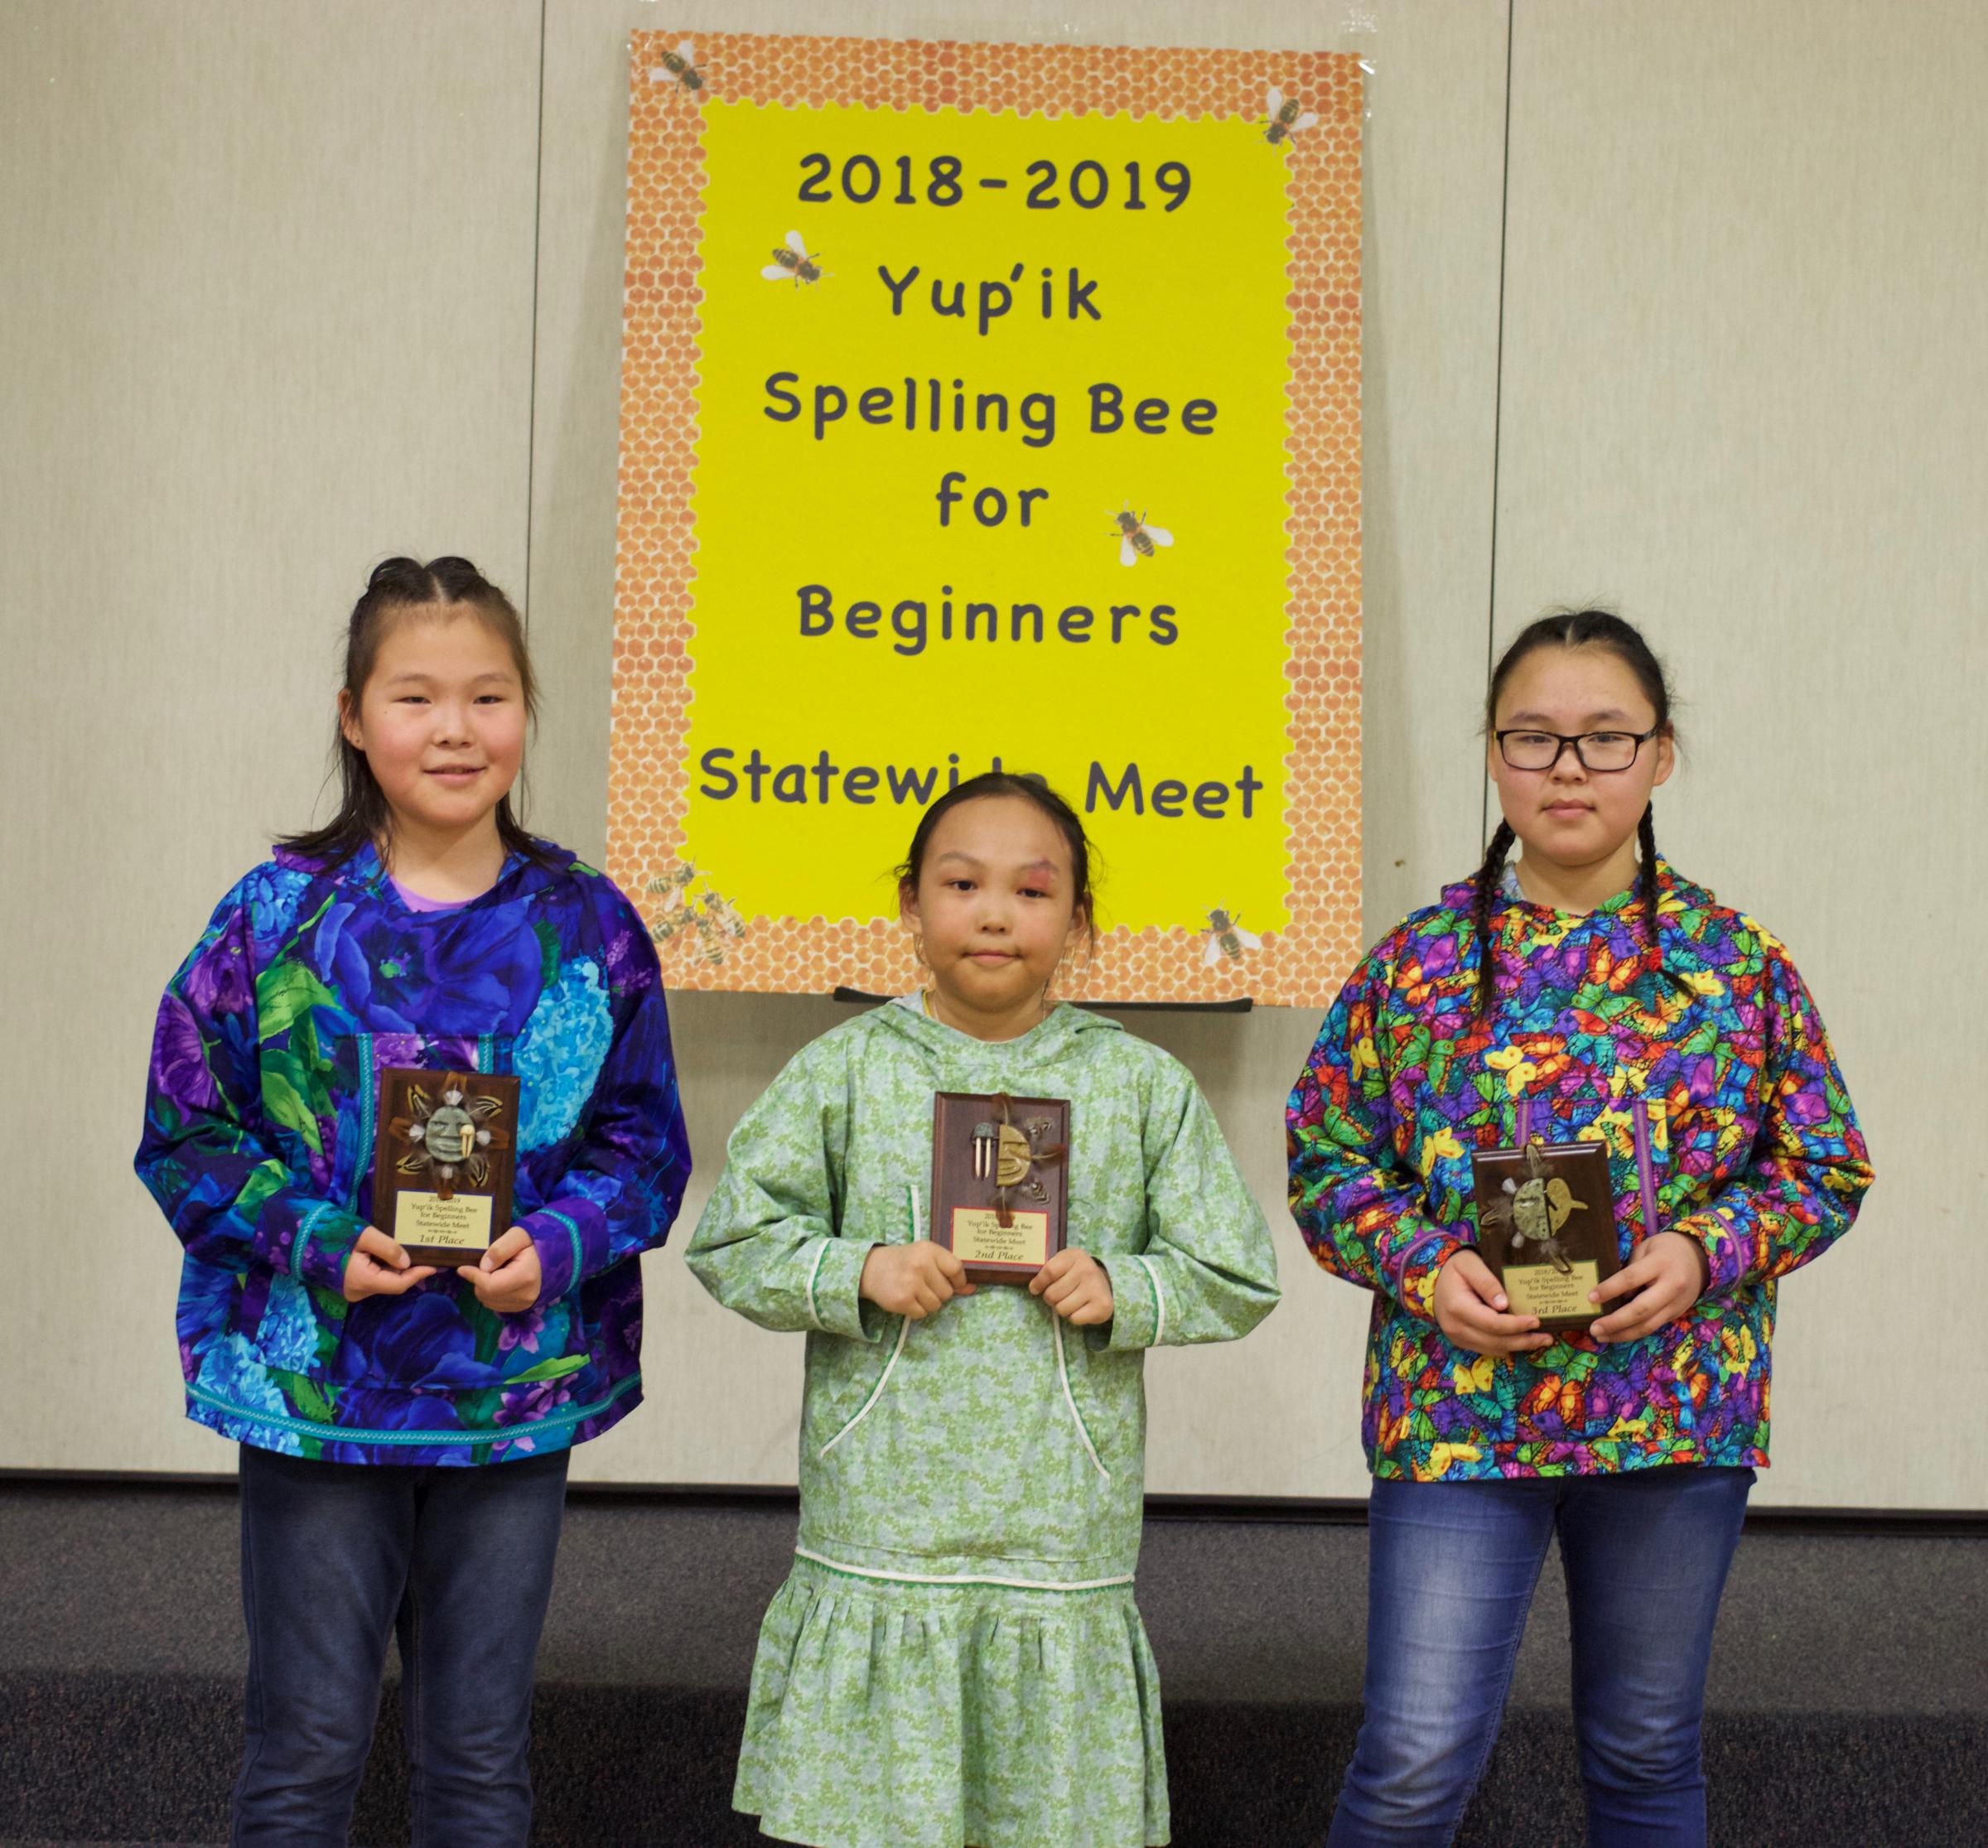 Yup'ik literacy reaches new heights in spelling bee